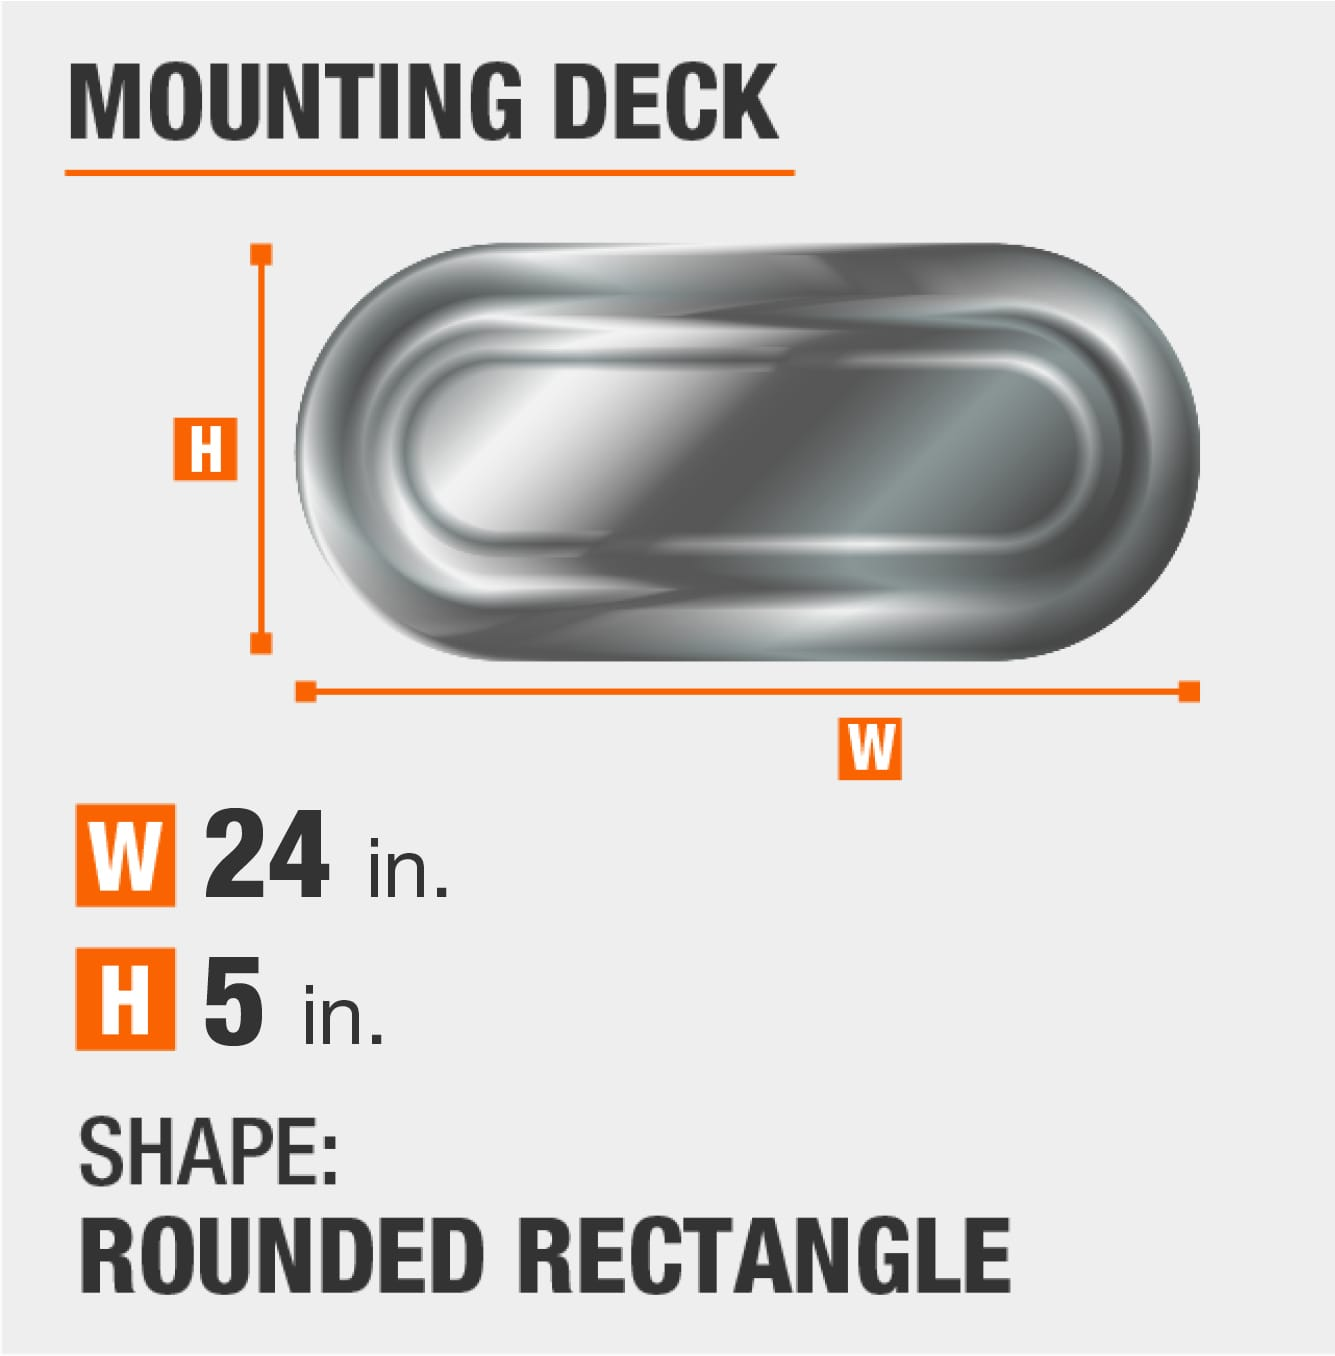 mounting deck is rectangular with round sides and 5 inches by 24 inches